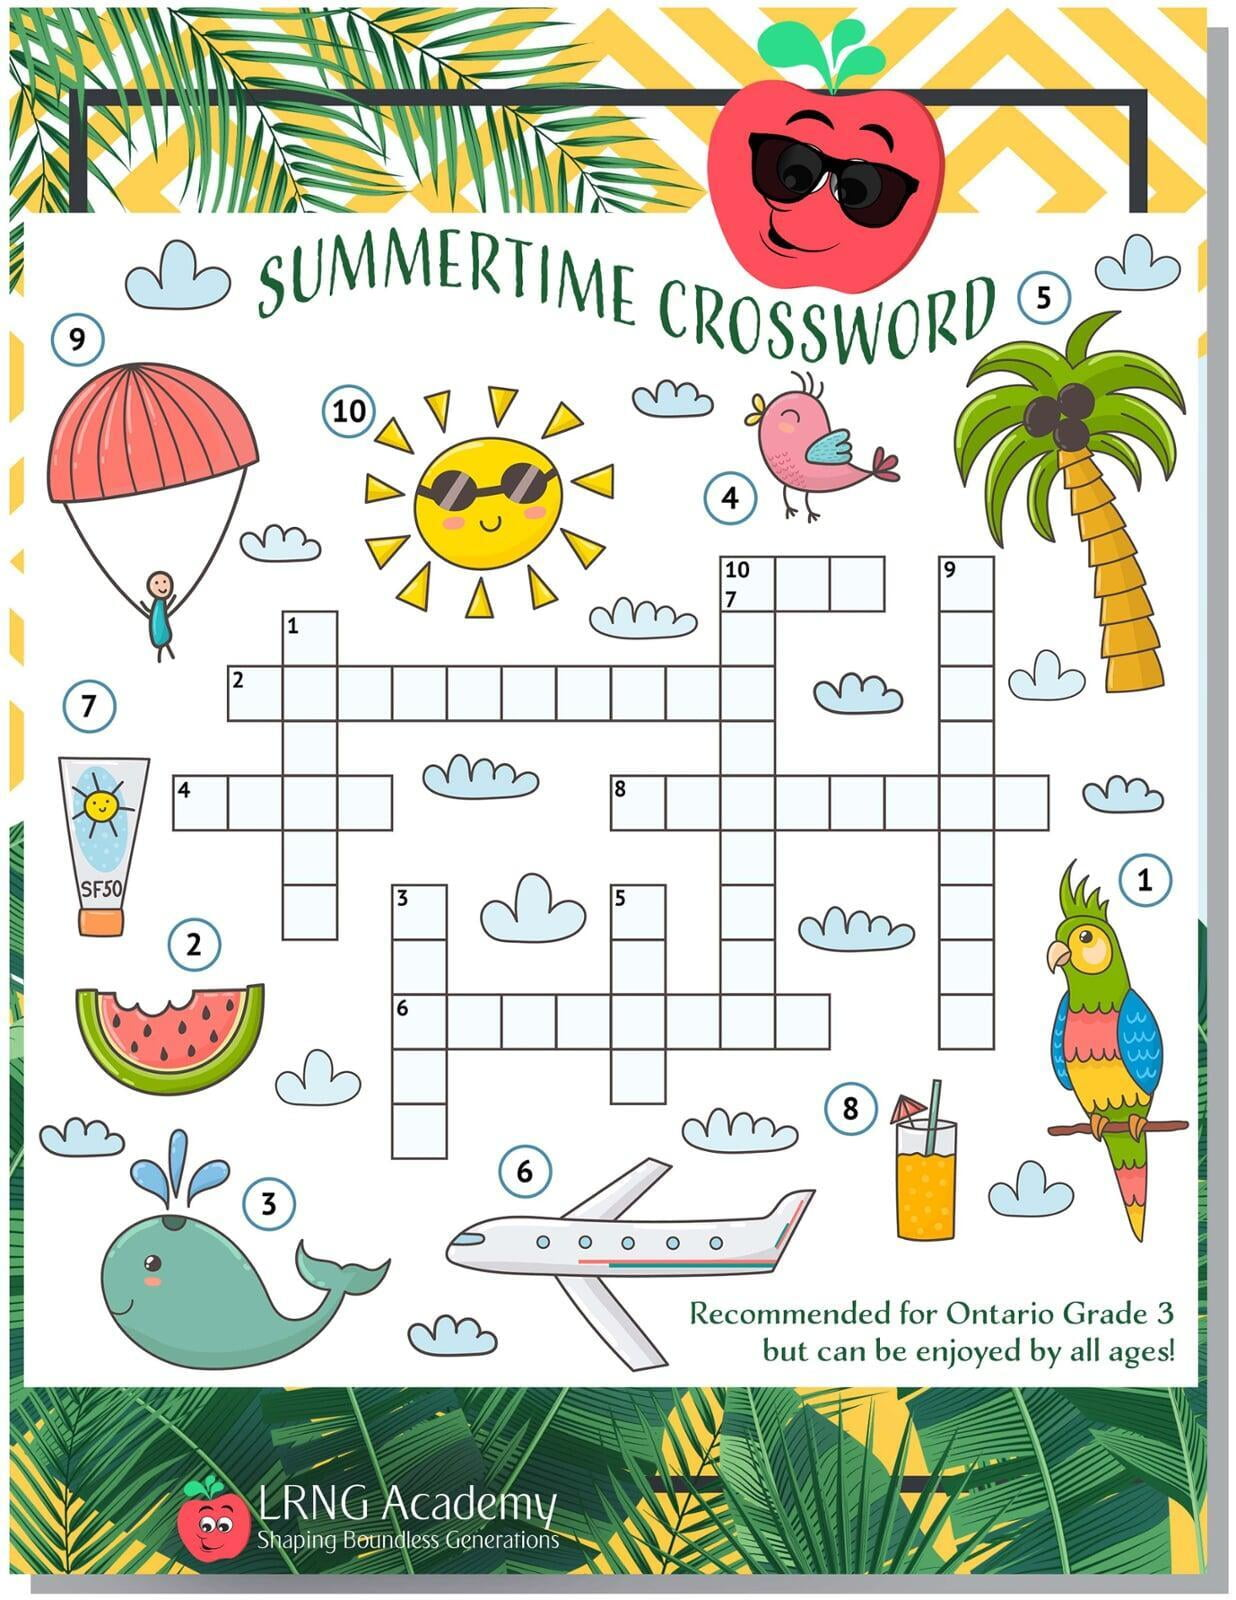 Summertime Crossword - Appie Activities - LRNG Academy - Shaping Boundless Generations - Online Tutoring | Online Learning | eLearning | Virtual School | Tutoring Service | Virtual Learning